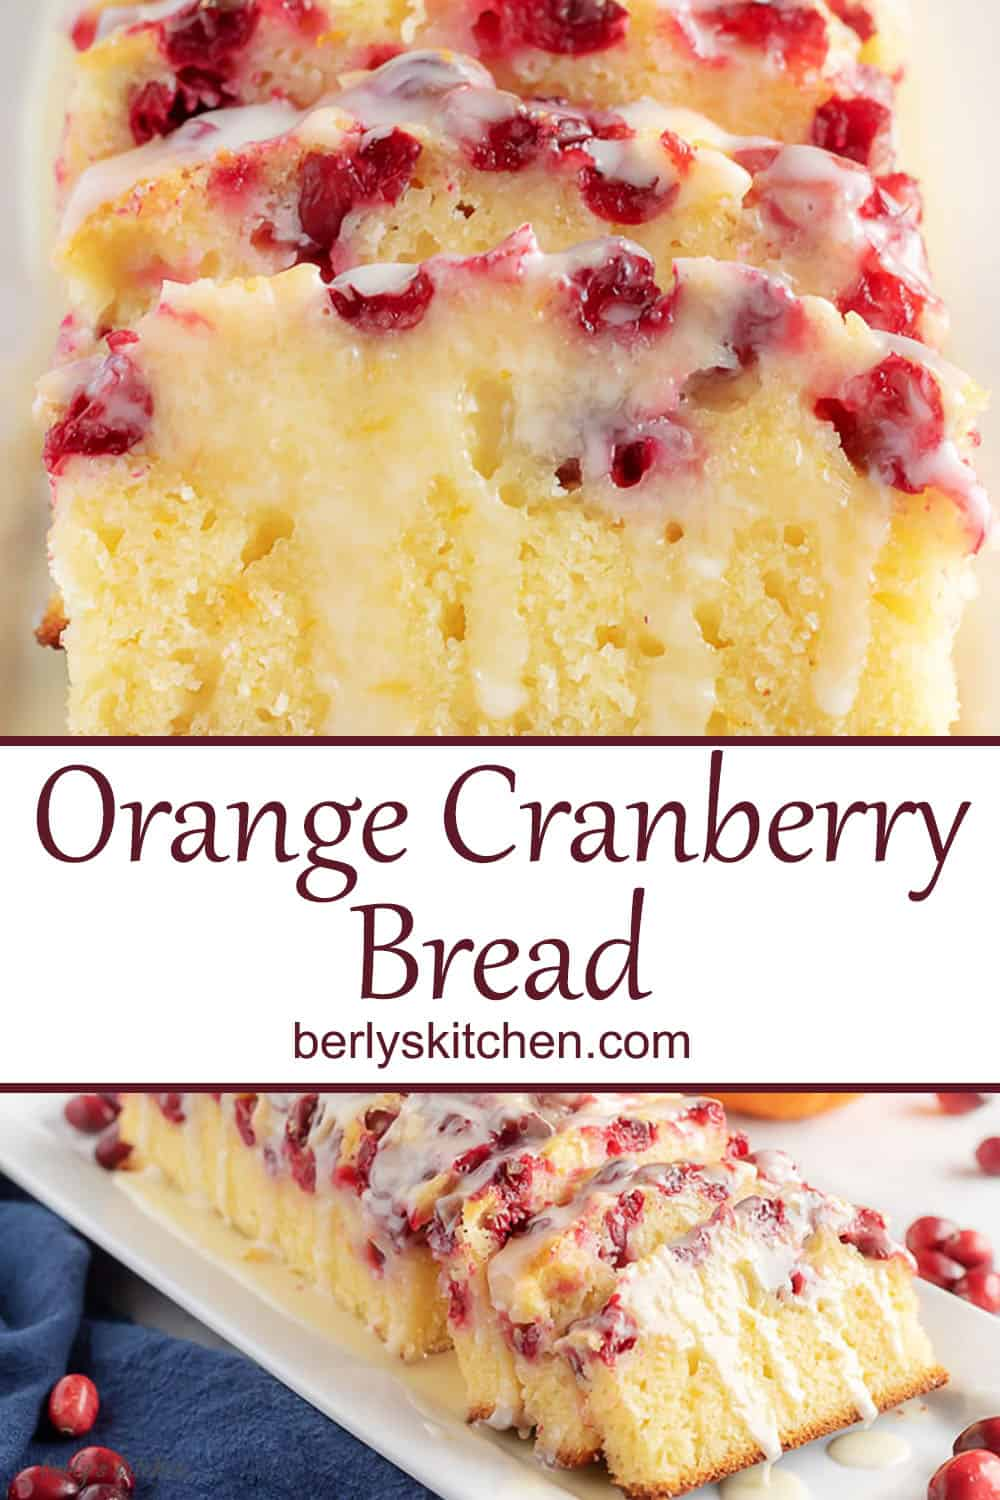 This orange cranberry bread is incredibly moist, dense, and full of orange and cranberry in every bite. It's even topped with a sweet orange glaze that puts it over the top. #berlyskitchen